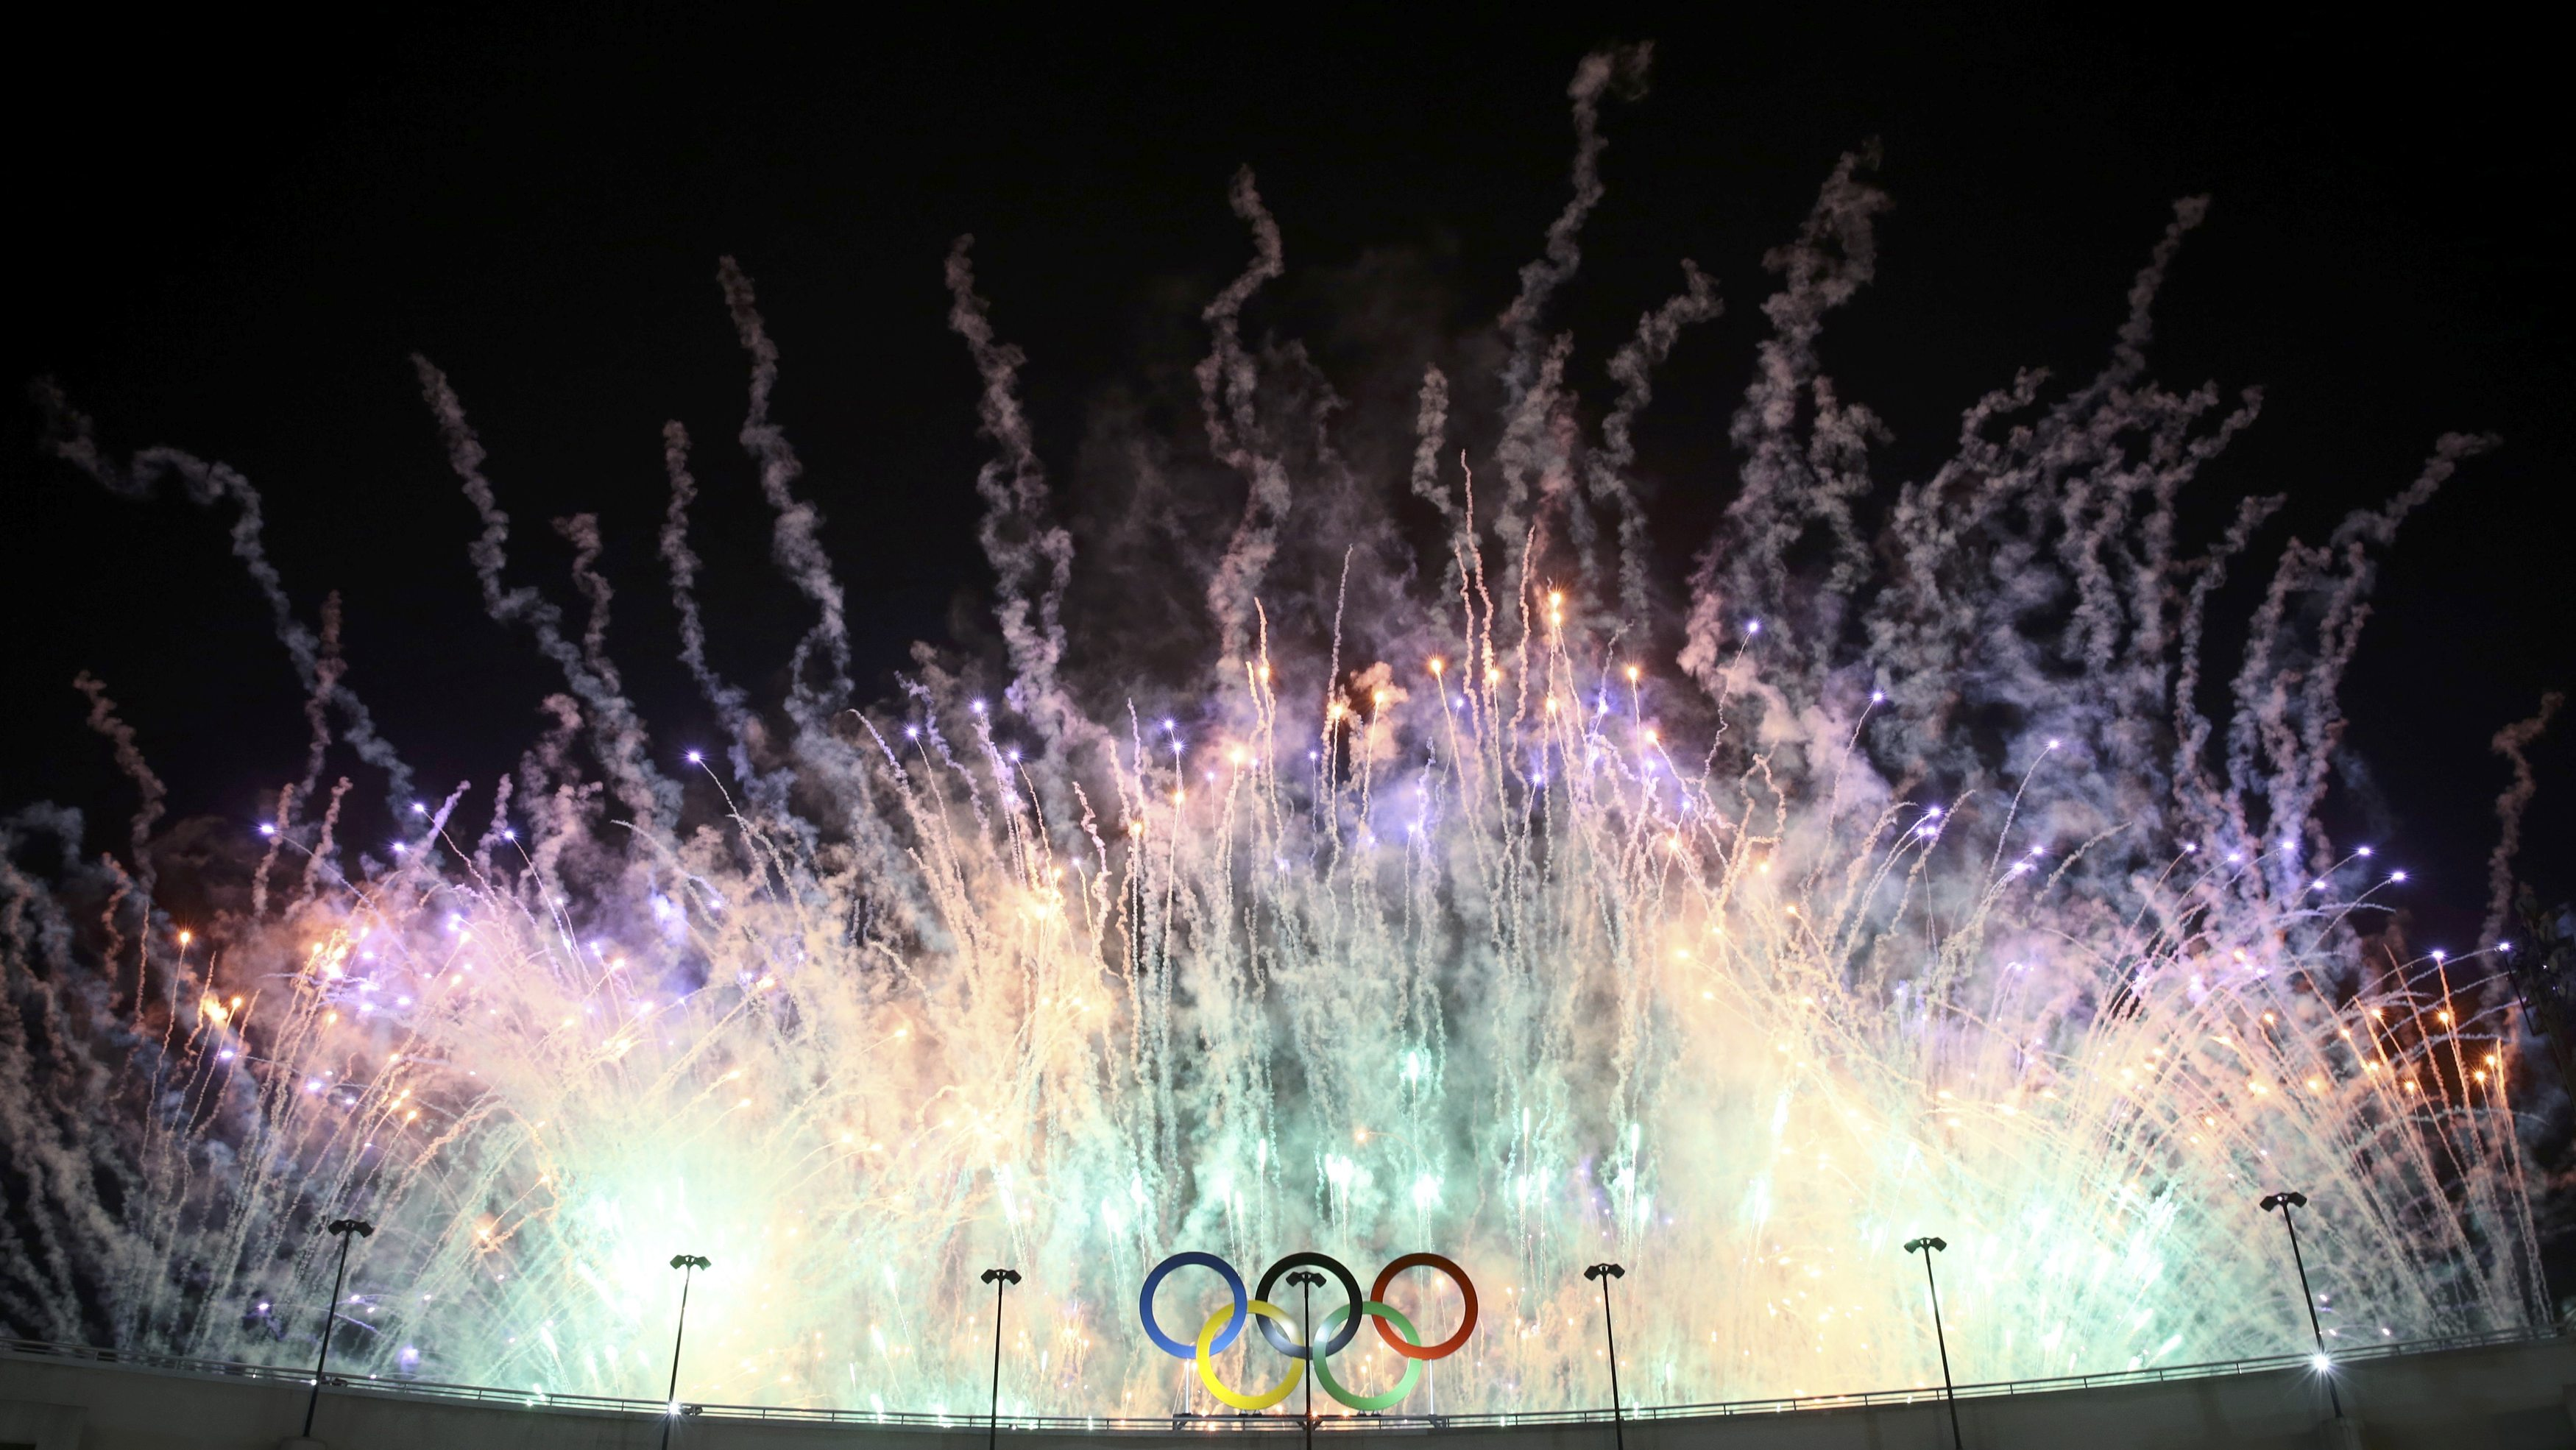 Olympics 2016: Rio opens Games with ode to forests, favelas and funk